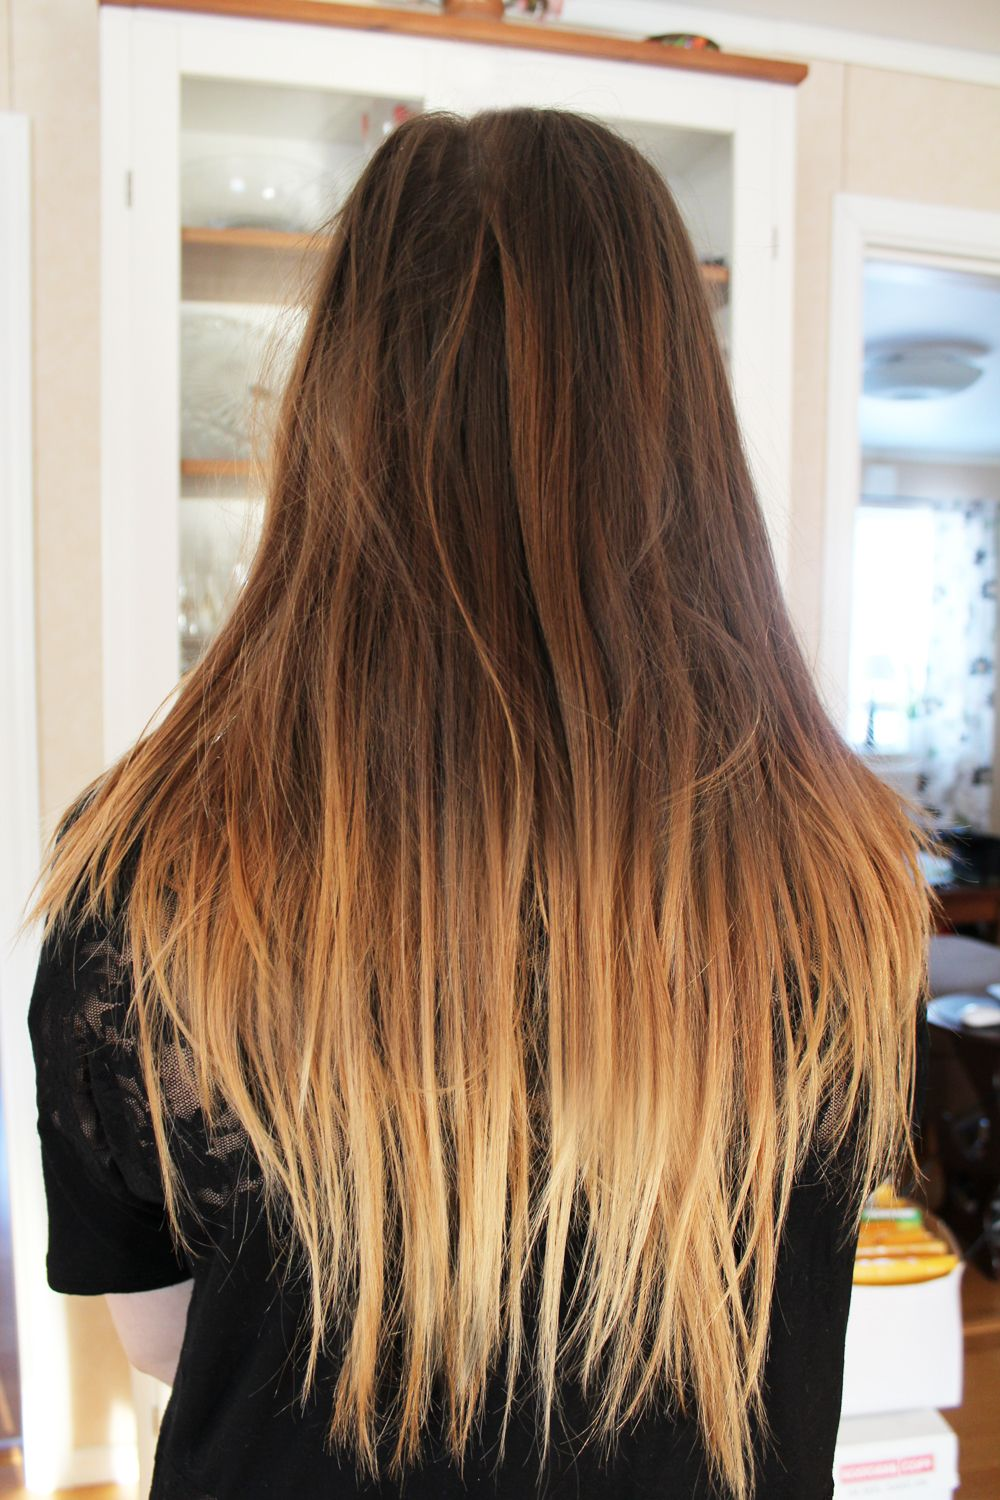 Degrade hairbeautymakeup pinterest ombre hair hair and